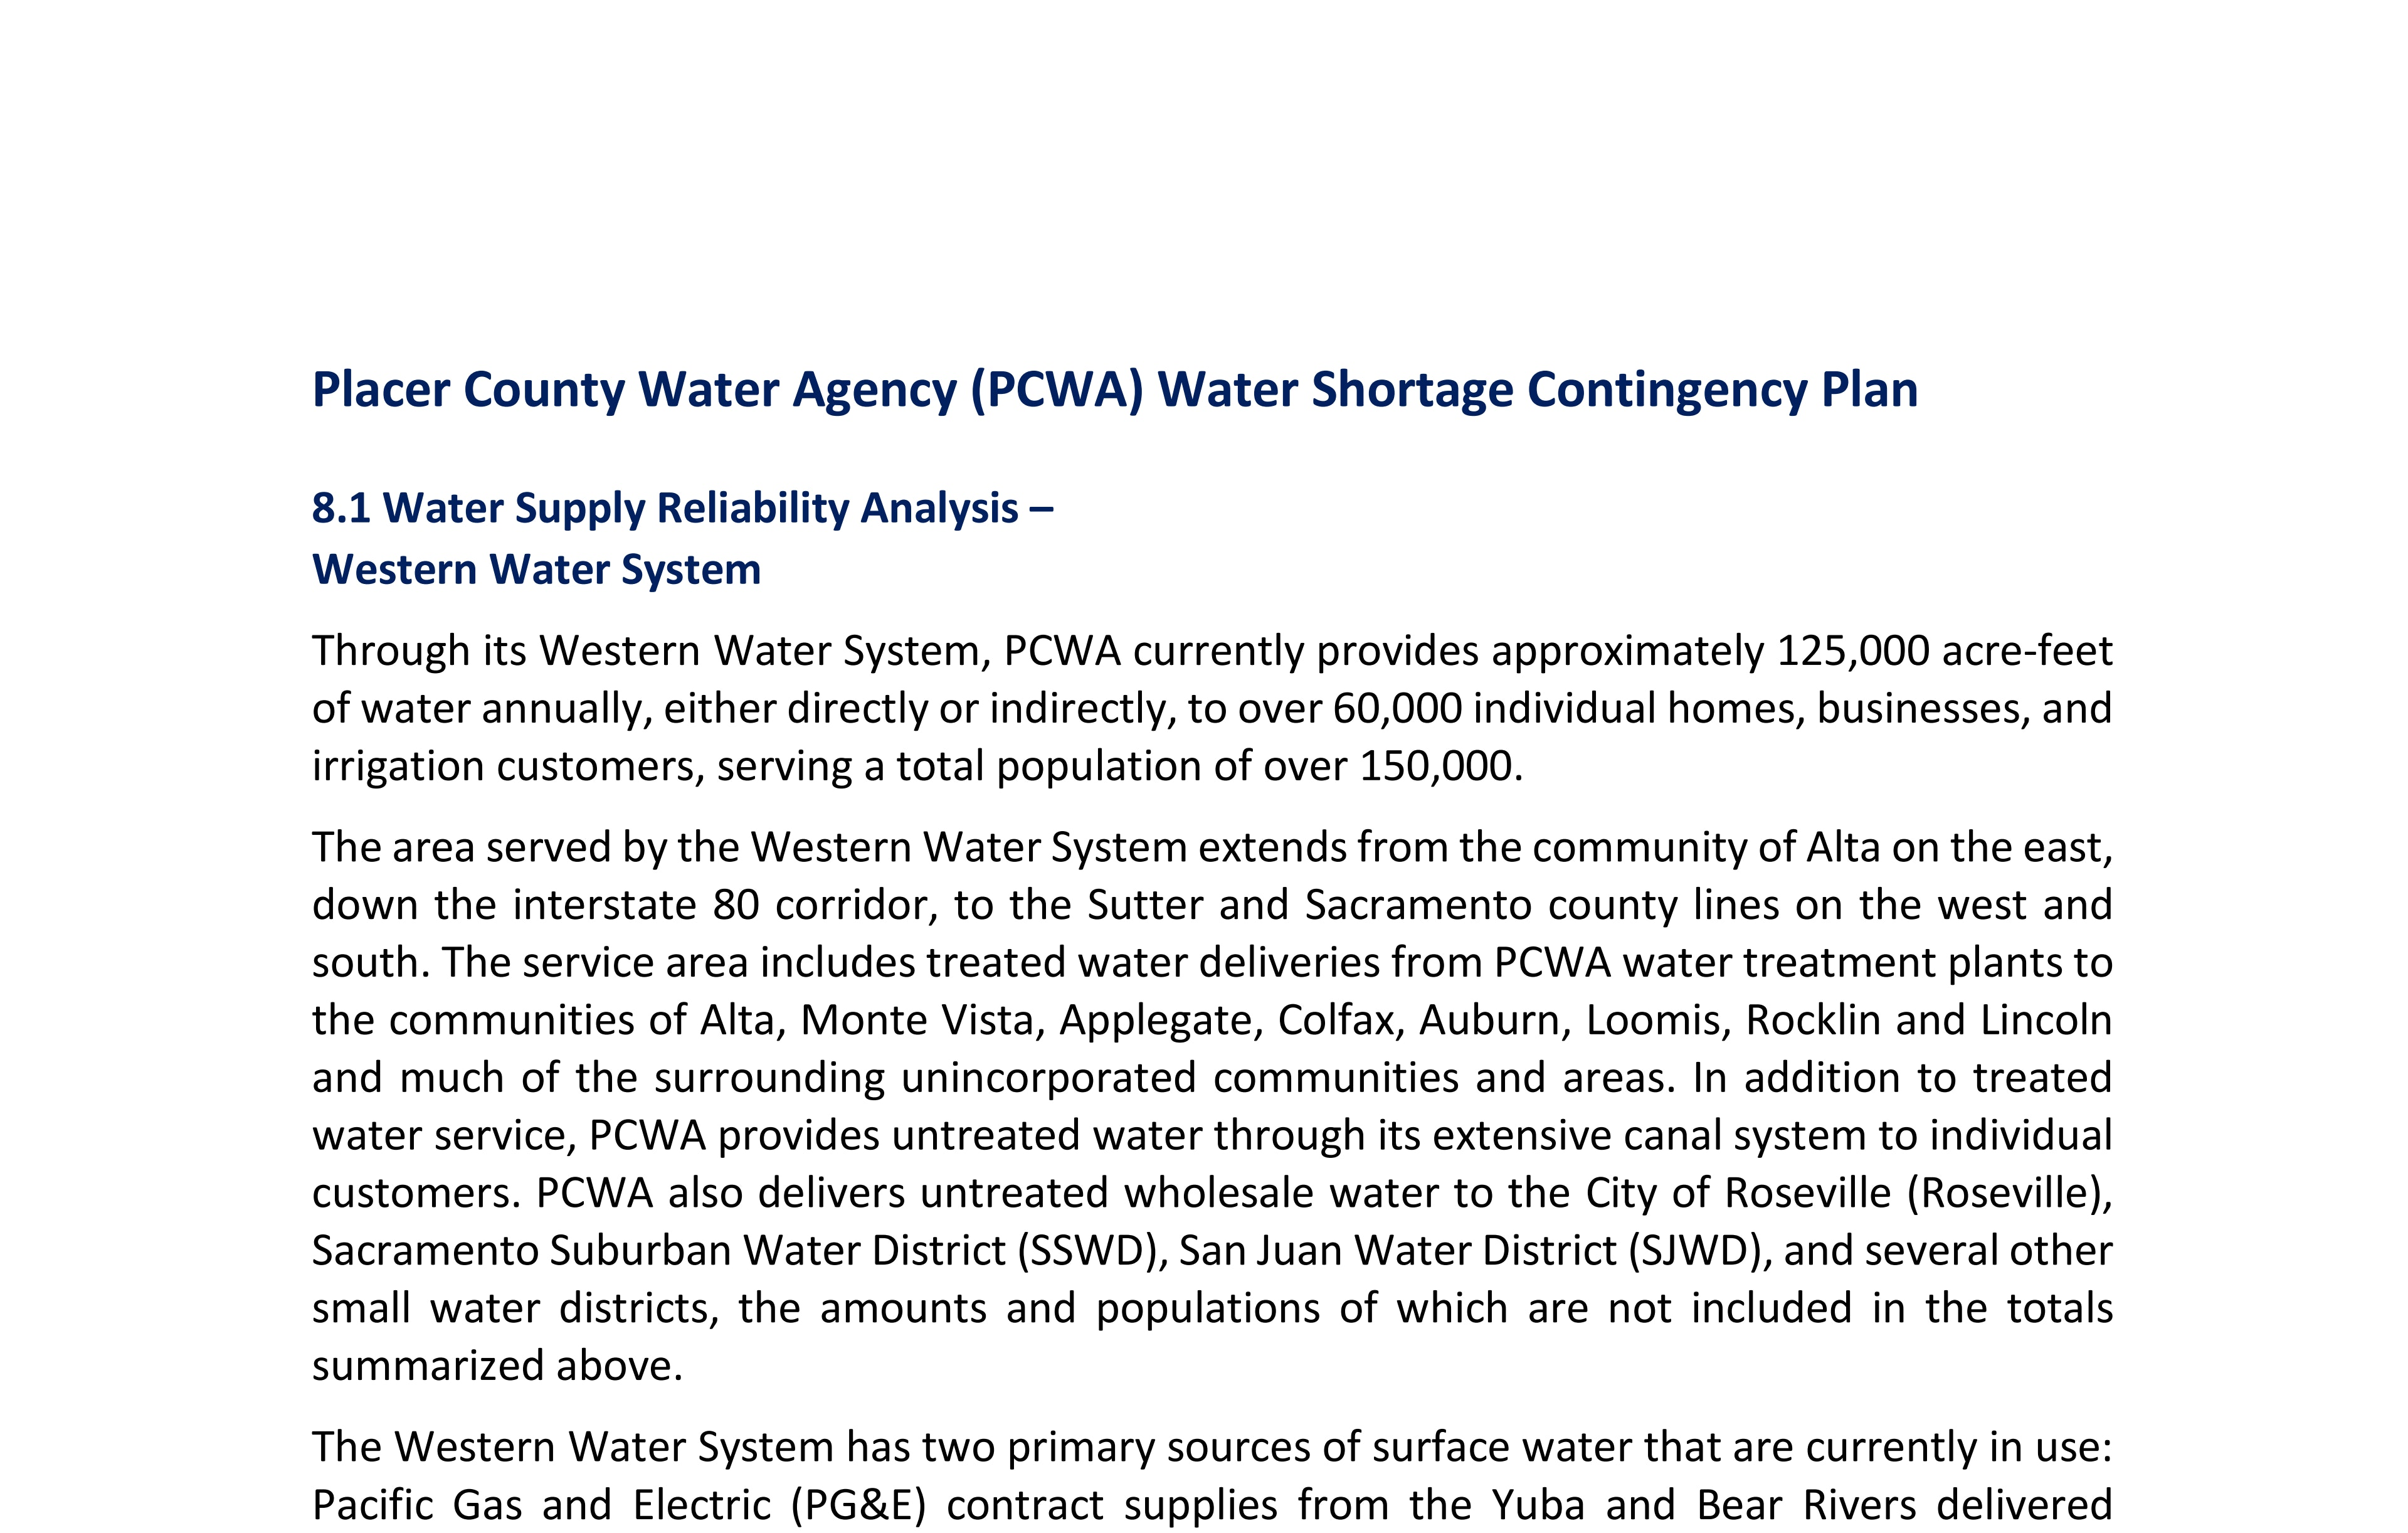 Thumbnail and link for PCWA Water Shortage Contingency Plan, final draft